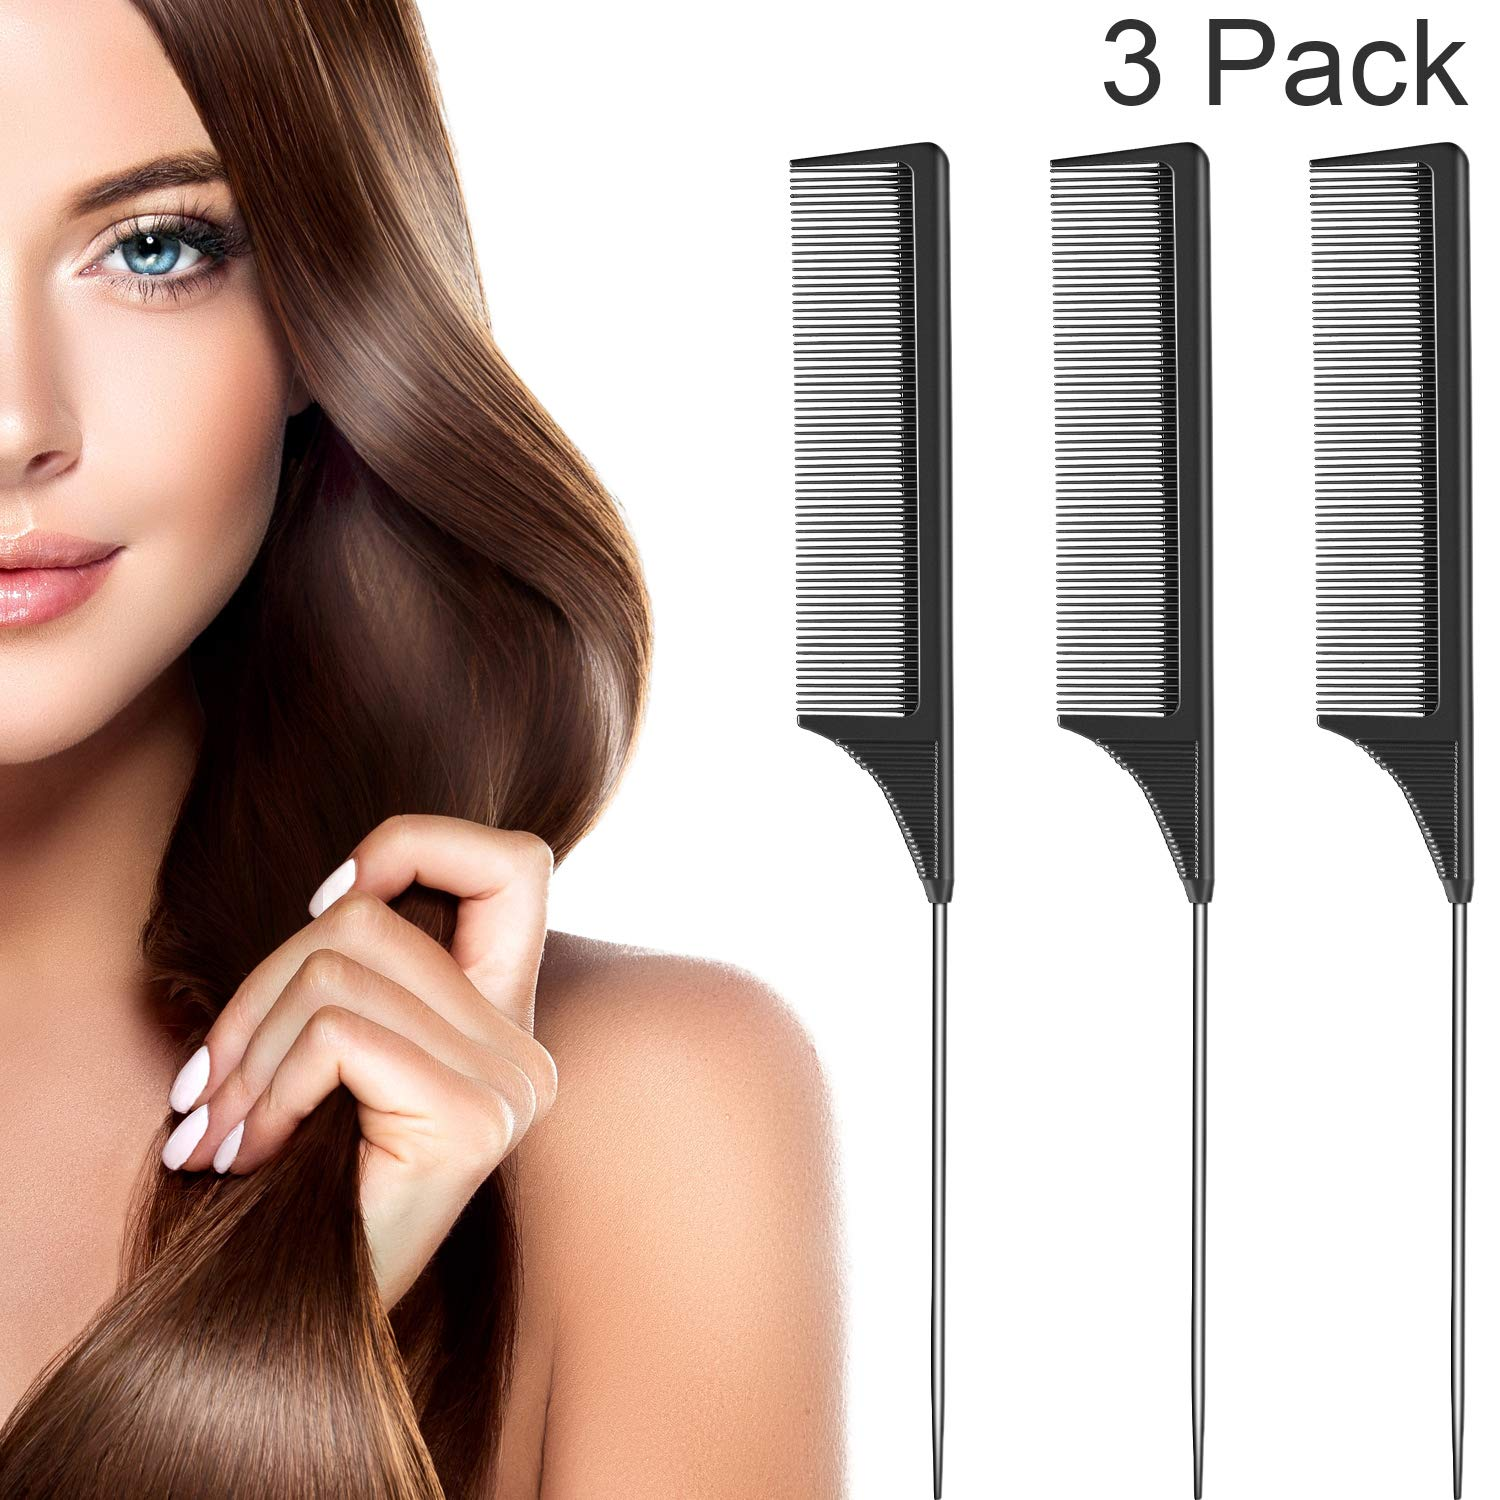 3 Pack Tail Comb Black Carbon Fiber and Stainless Steel Pintail and Heat Resistant Teasing Comb (Style B)